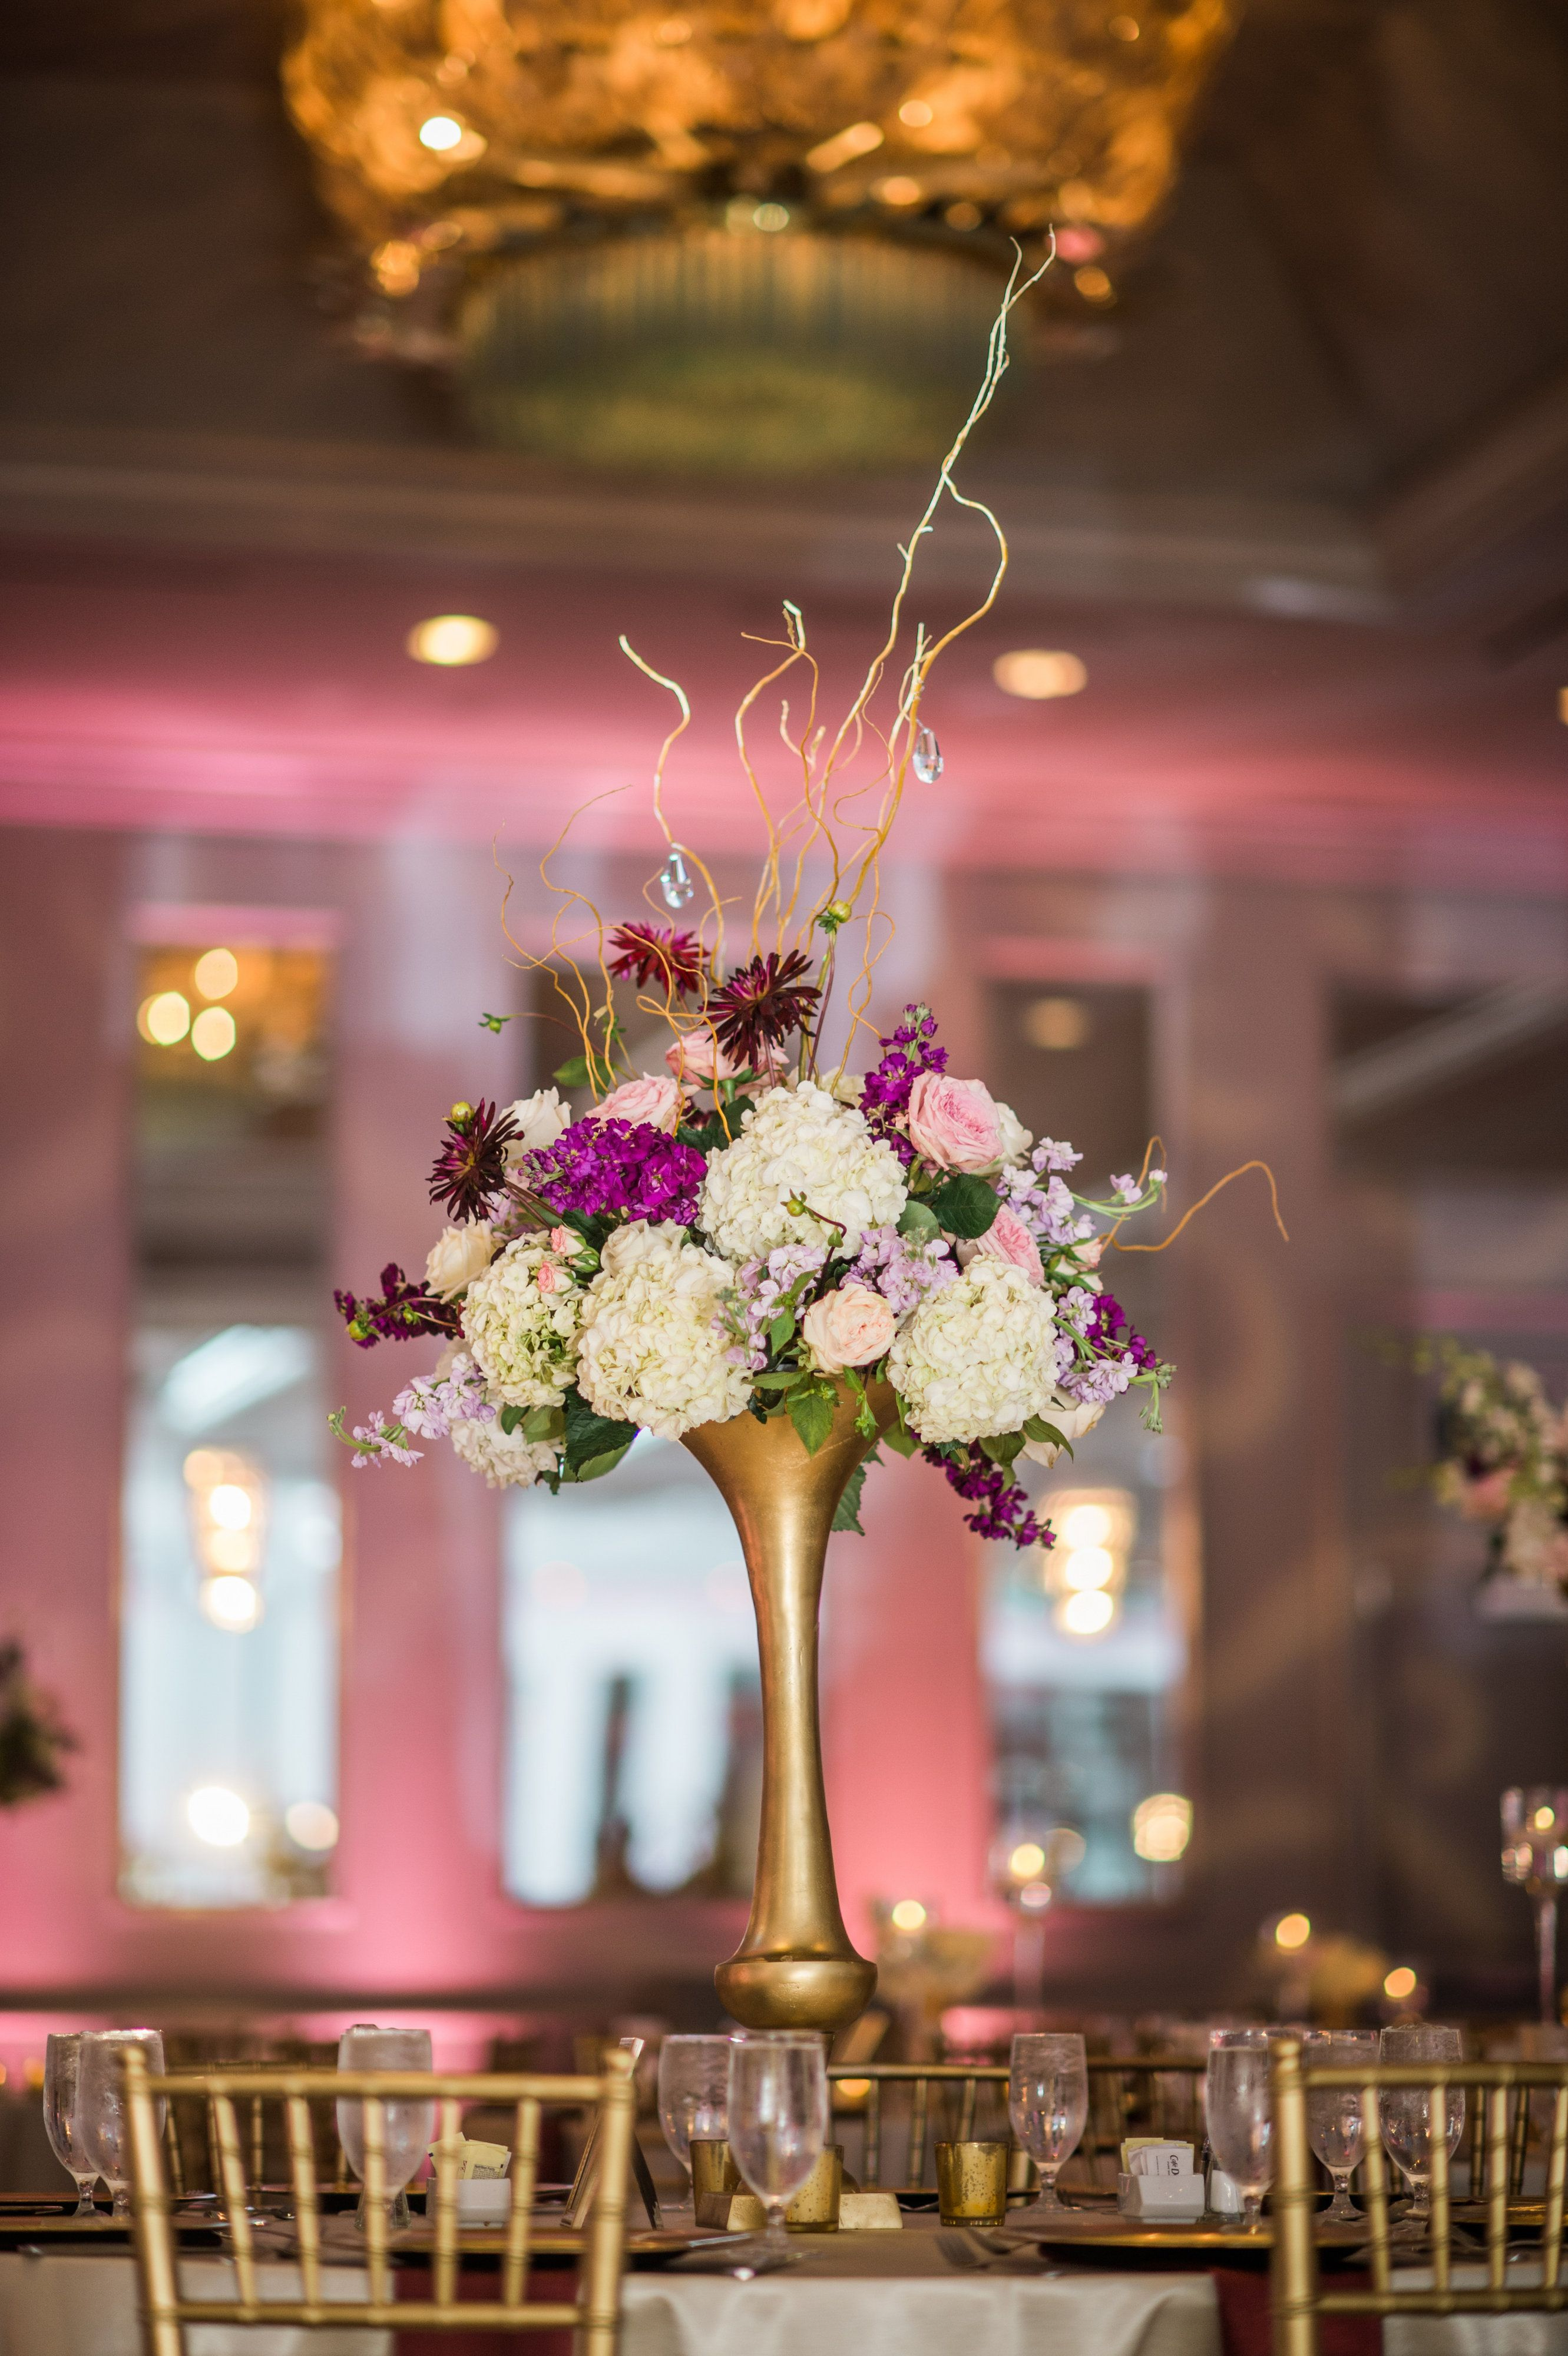 Nothing Like A Show Stopping Centerpiece To Add Your Wedding Design Www Beckybrides